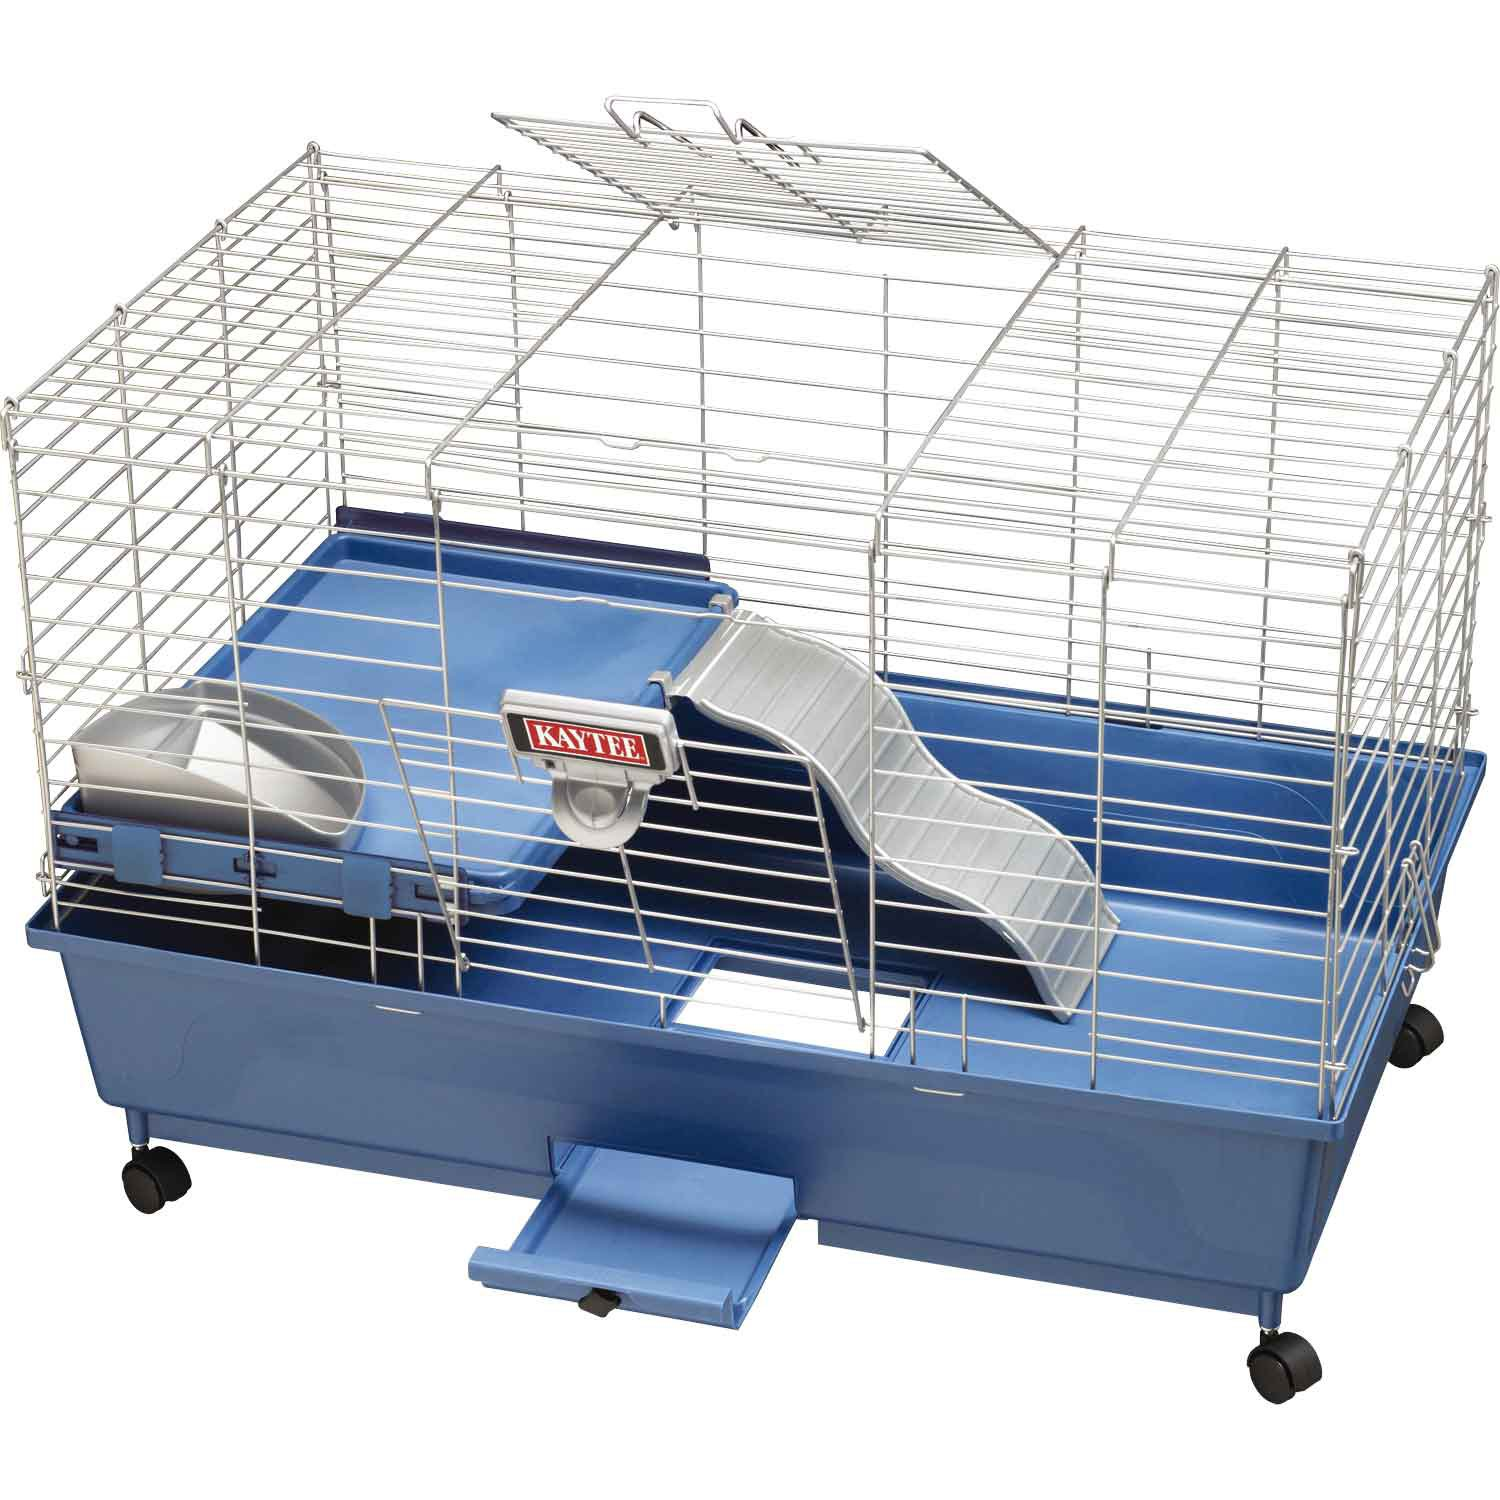 Kaytee guinea pig home ez clean system petco for Small guinea pig cages for sale